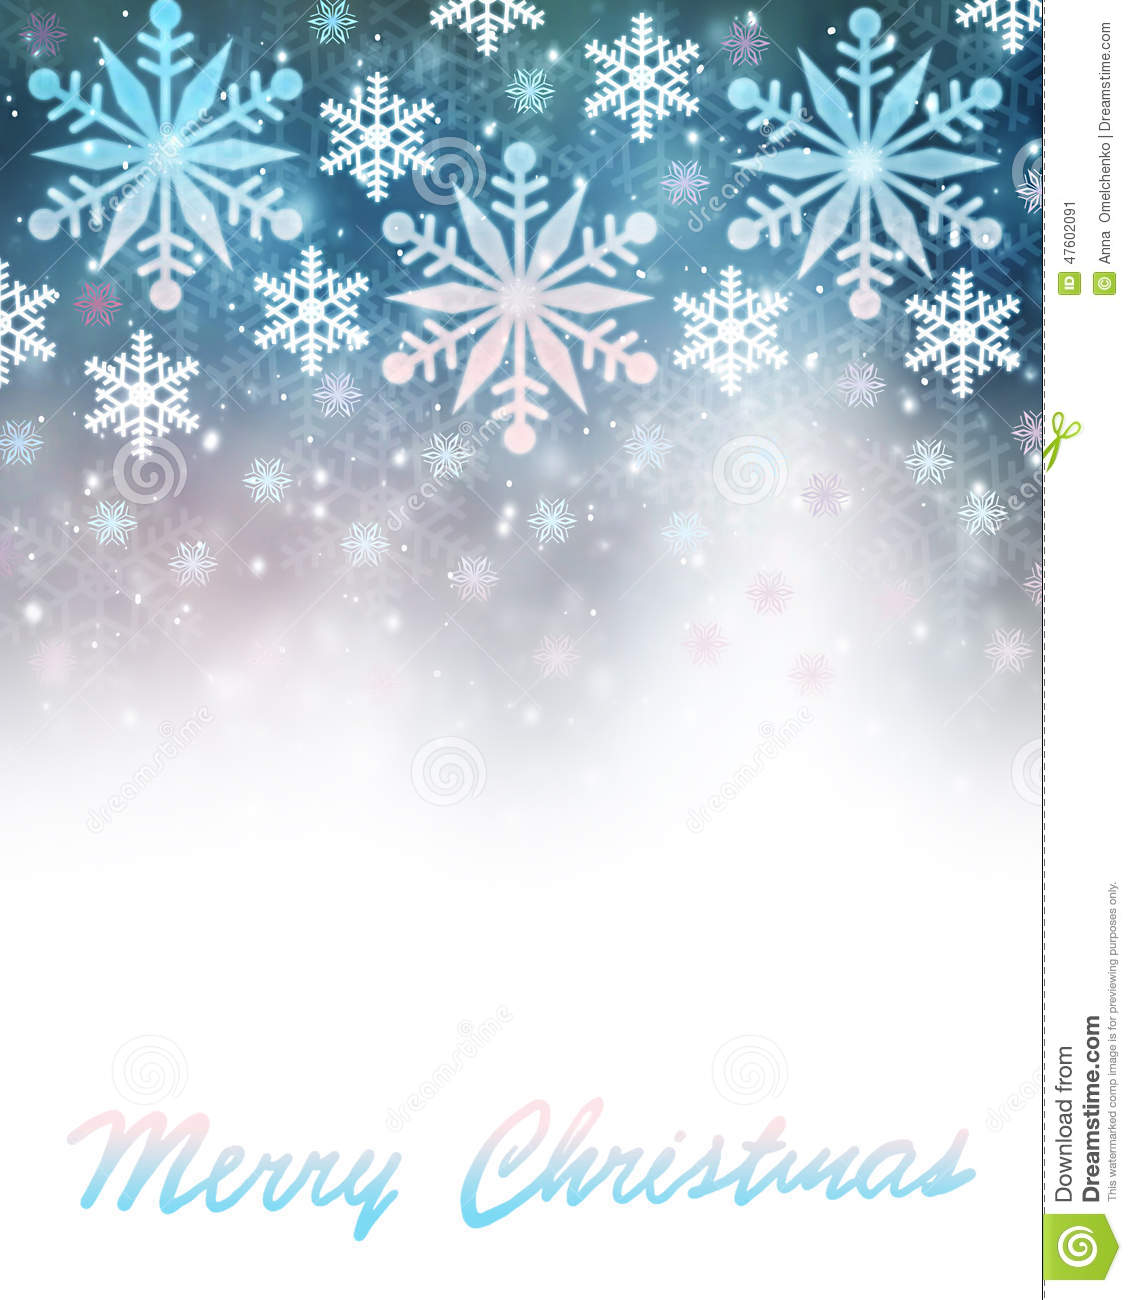 Merry christmas greeting card border stock illustration merry christmas greeting card border kristyandbryce Choice Image